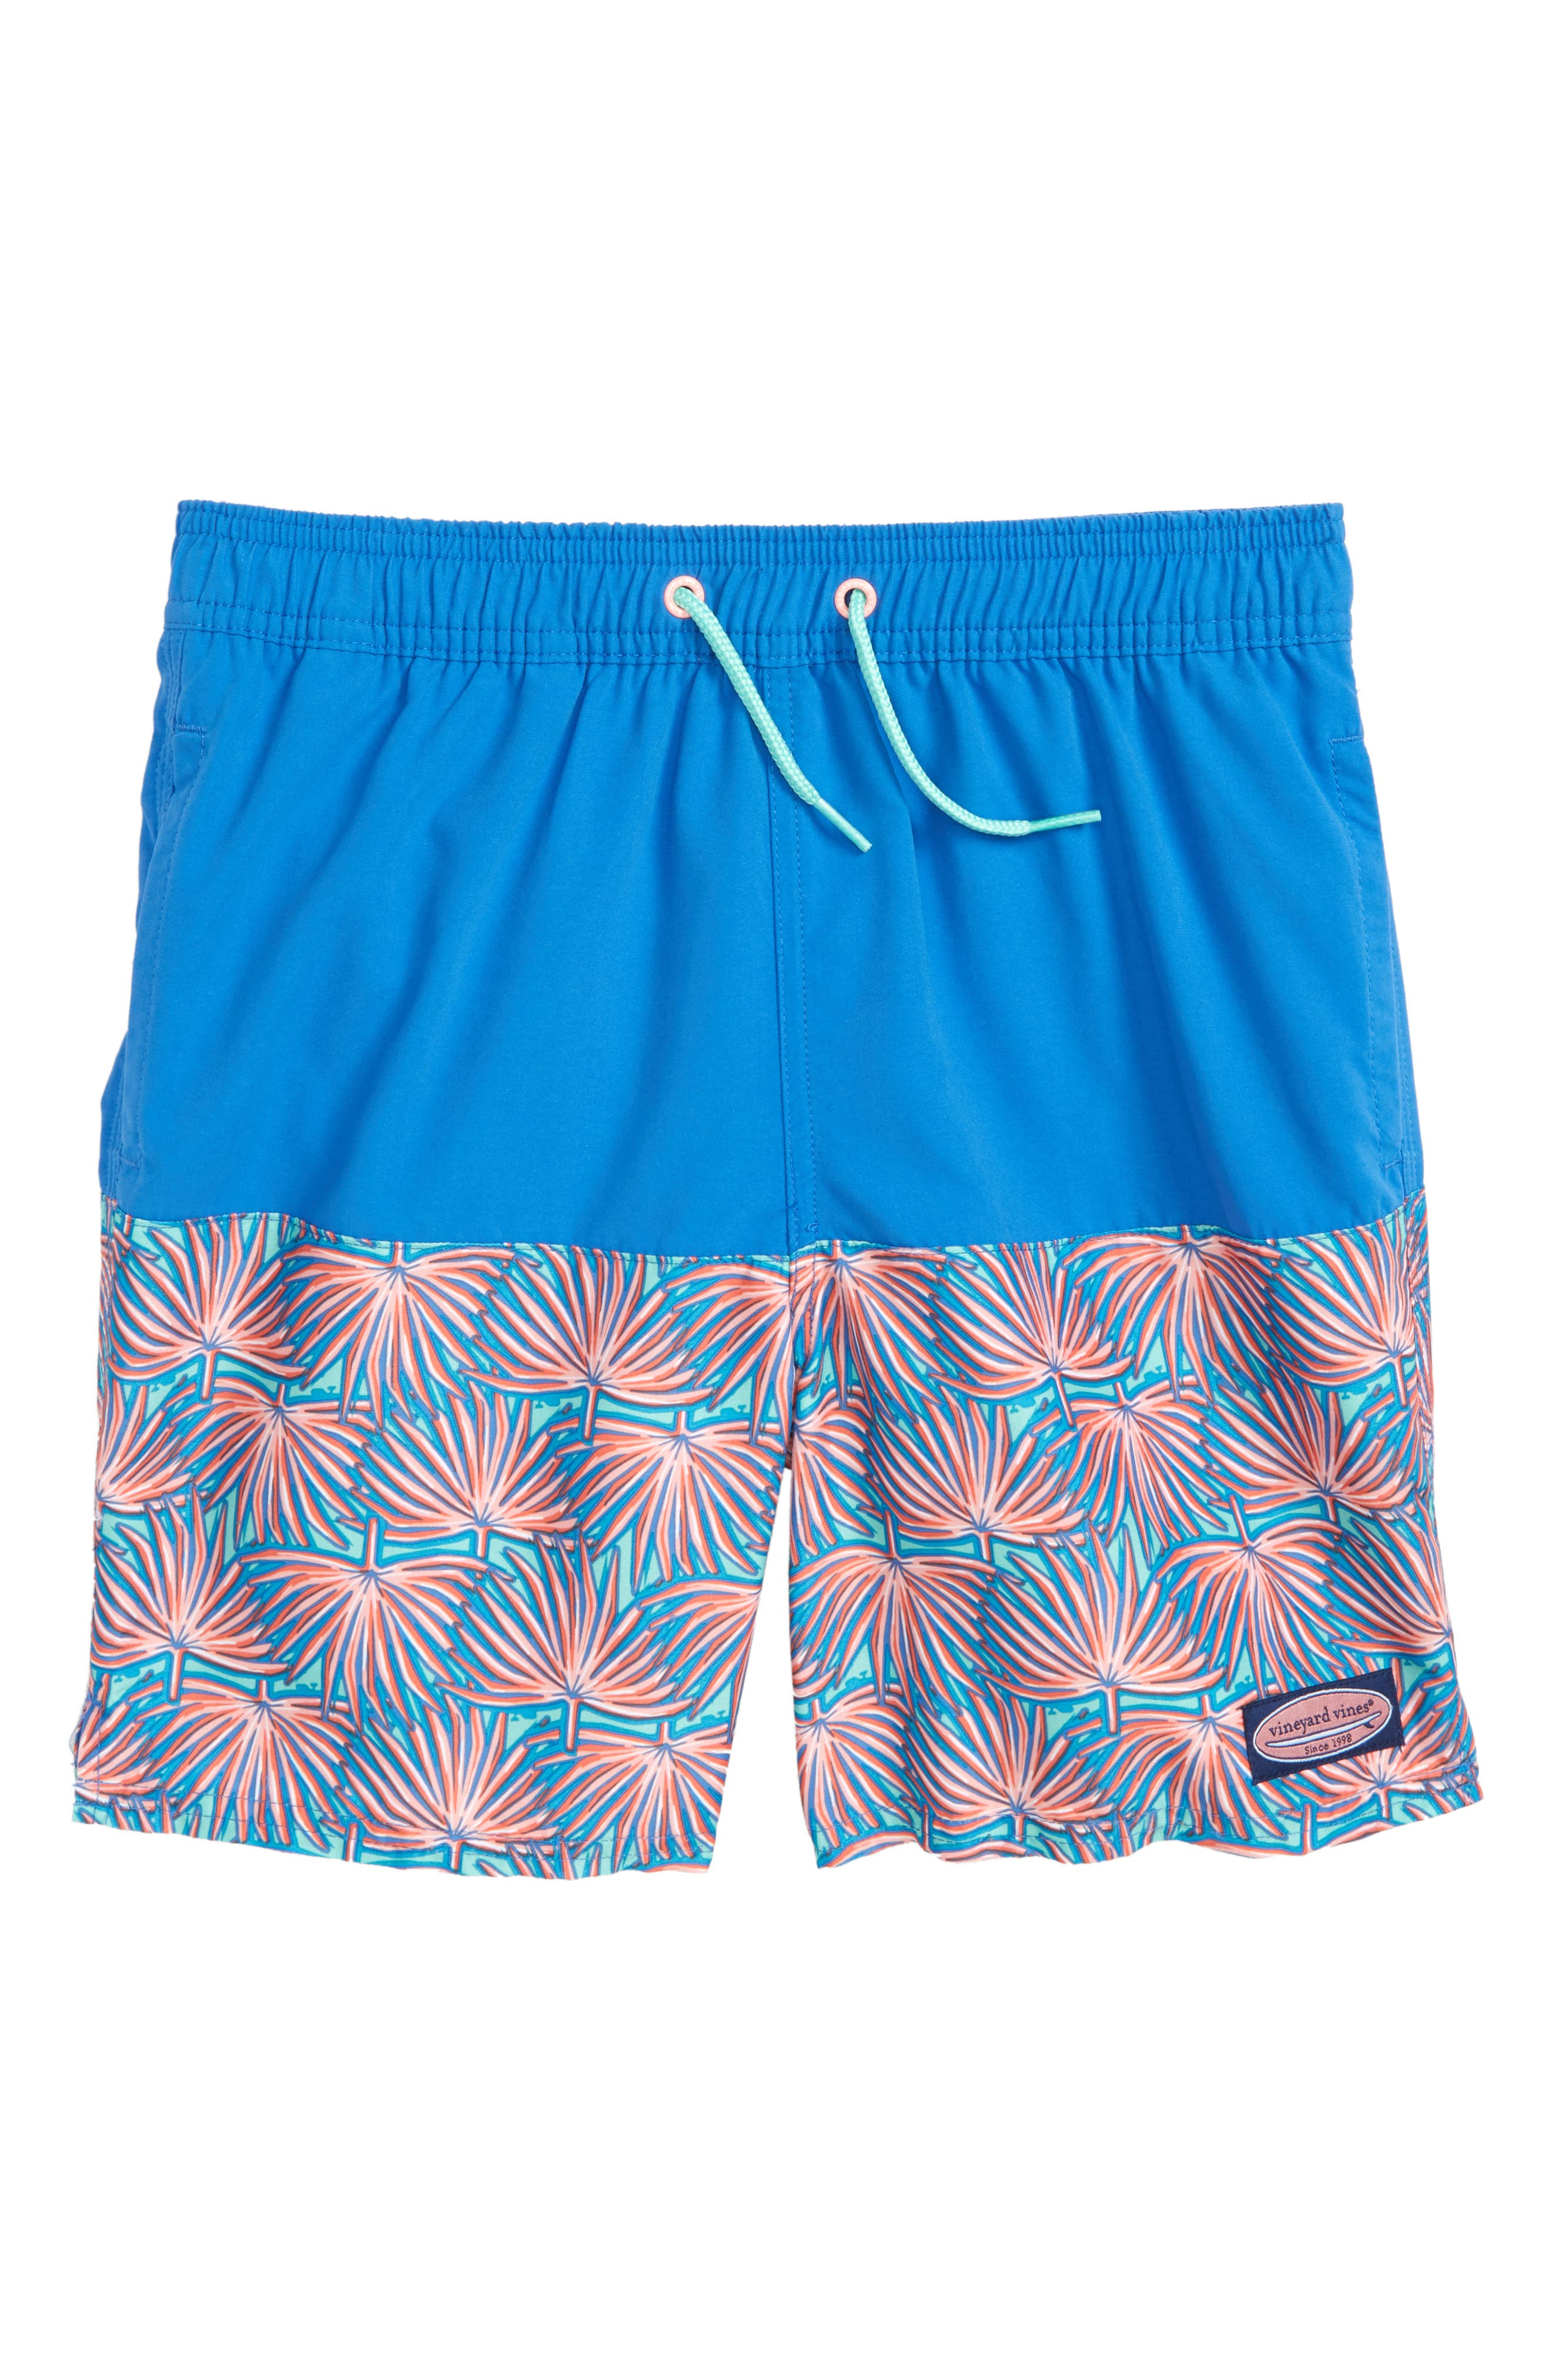 Chappy Fan Palm Print Swim Trunks,                         Main,                         color, Capri Blue